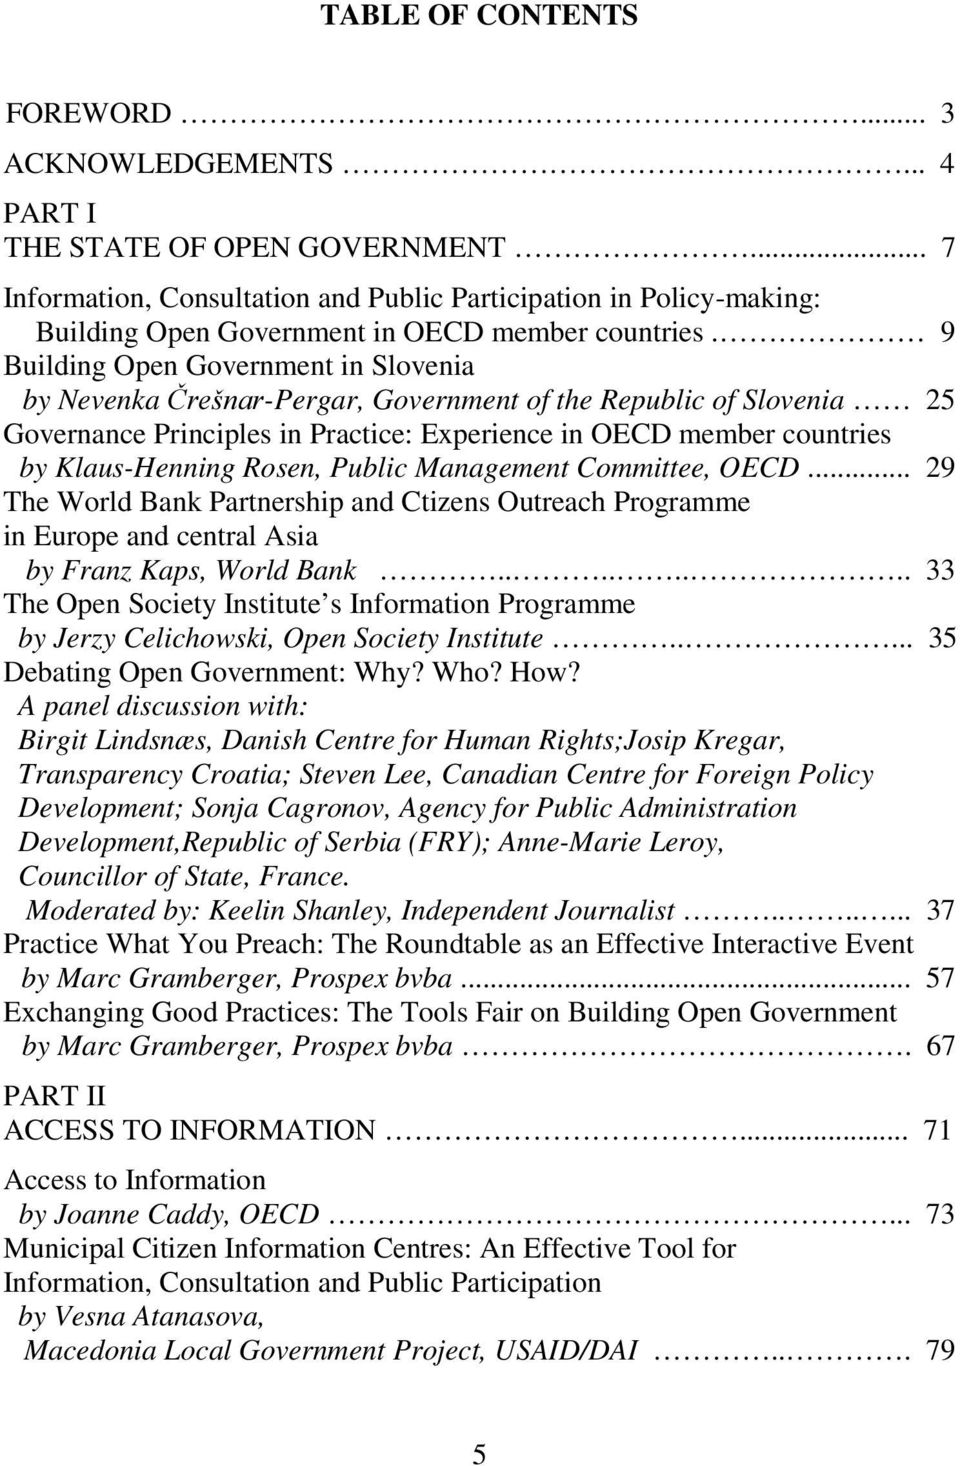 9 Building Open Government in Slovenia by Nevenka ýuhãqdu-pergar, Government of the Republic of Slovenia 25 Governance Principles in Practice: Eperience in OECD member countries by Klaus-Henning